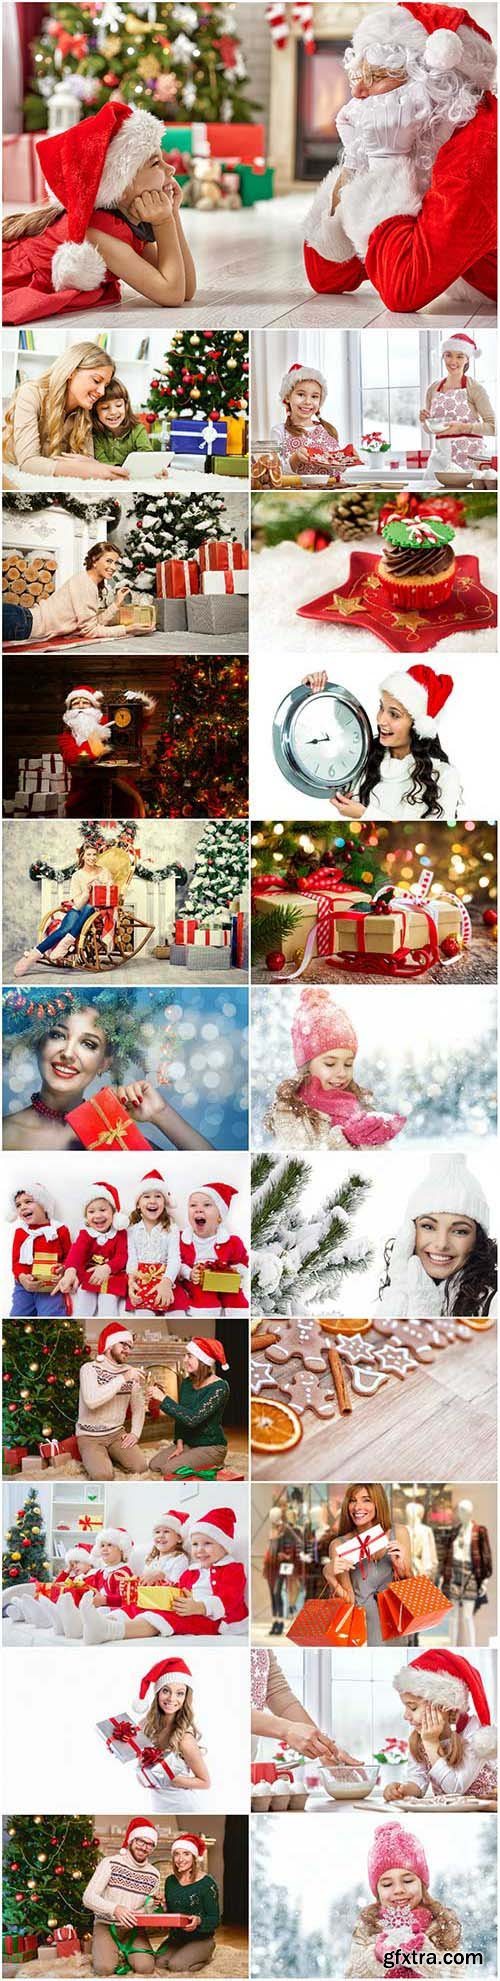 New Year and Christmas stock photos 91